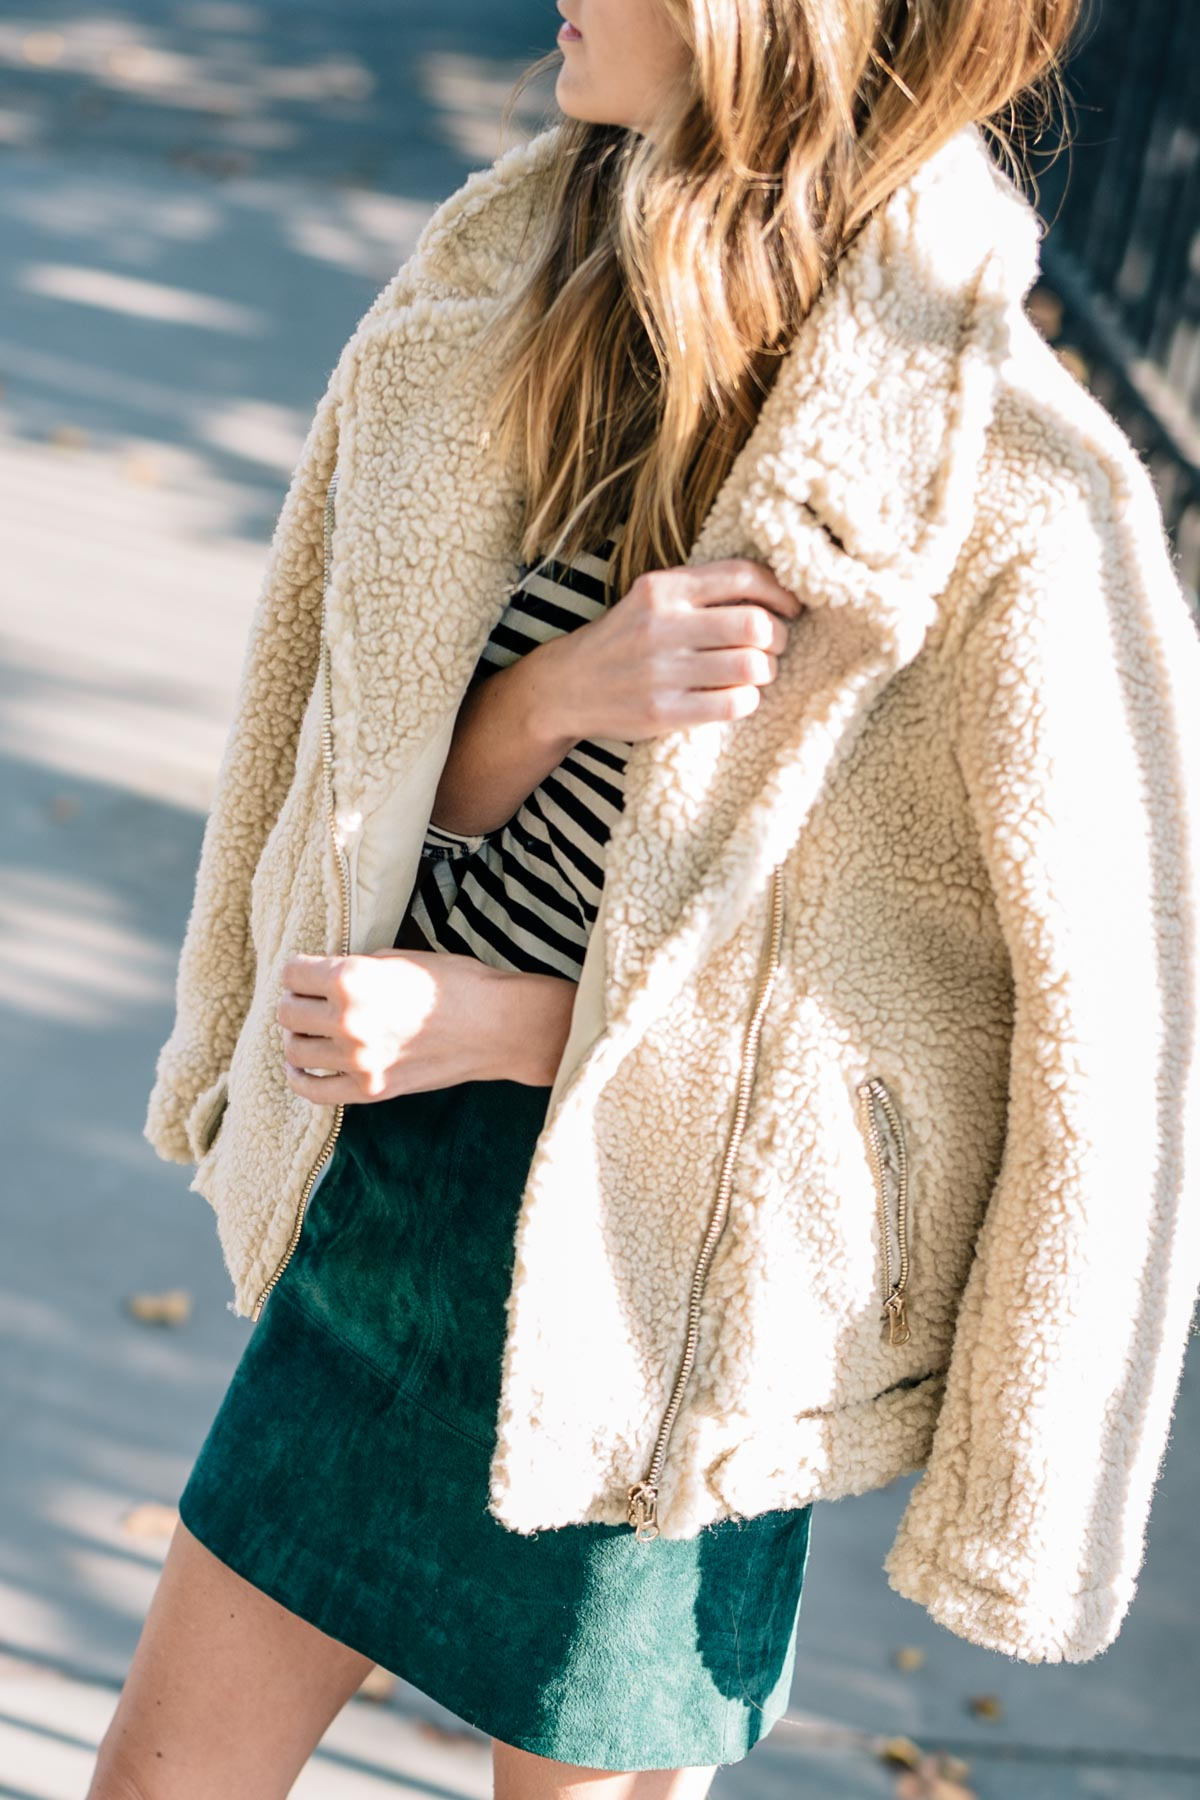 Jess Ann Kirby wears a H&M faux shearling moto jacket with a suede mini skirt for a cozy fall look